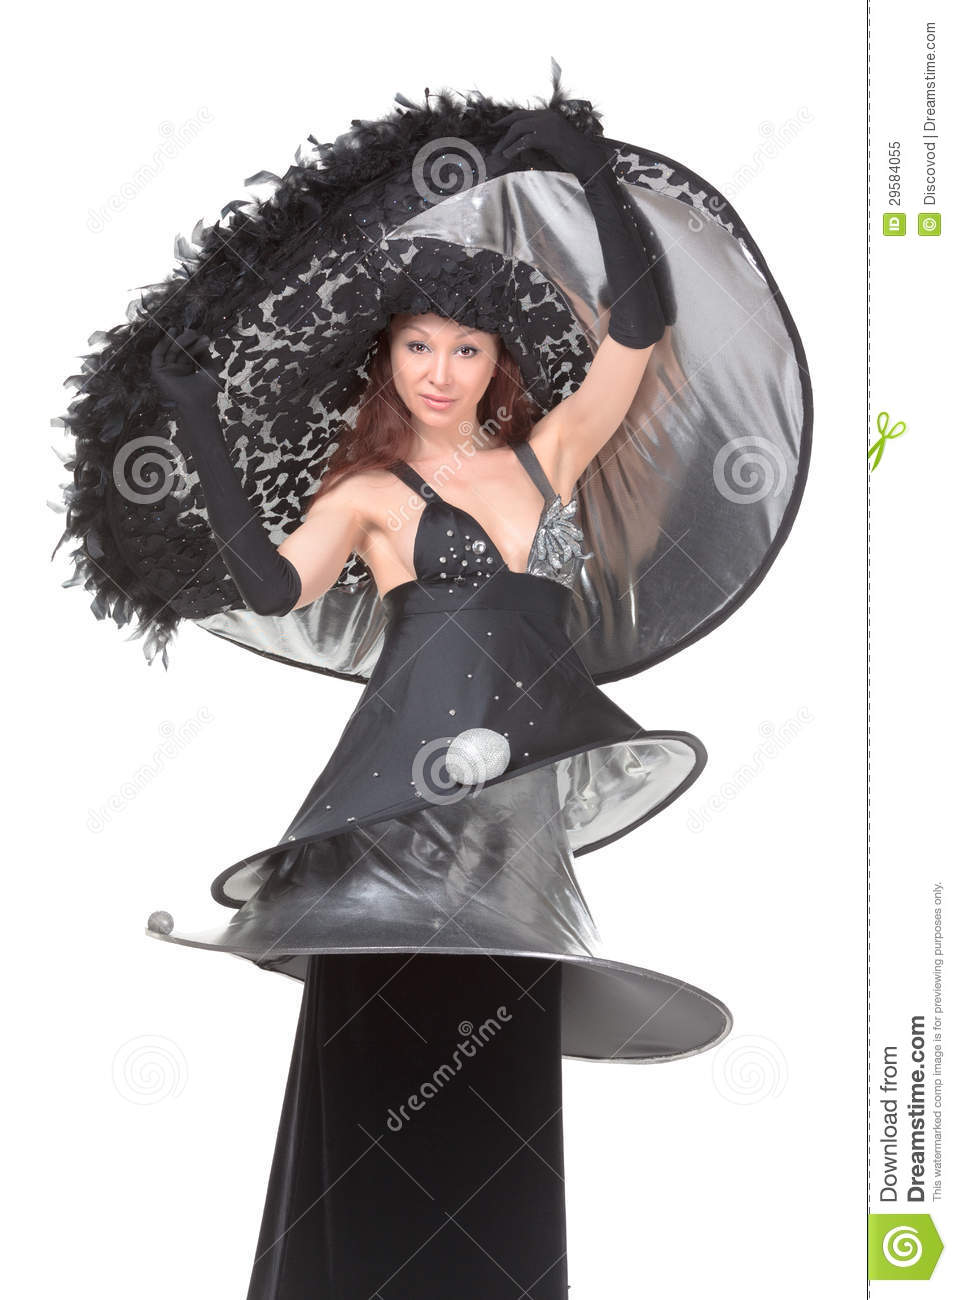 Woman in haute couture fashion royalty free stock photo for Women s haute couture clothing